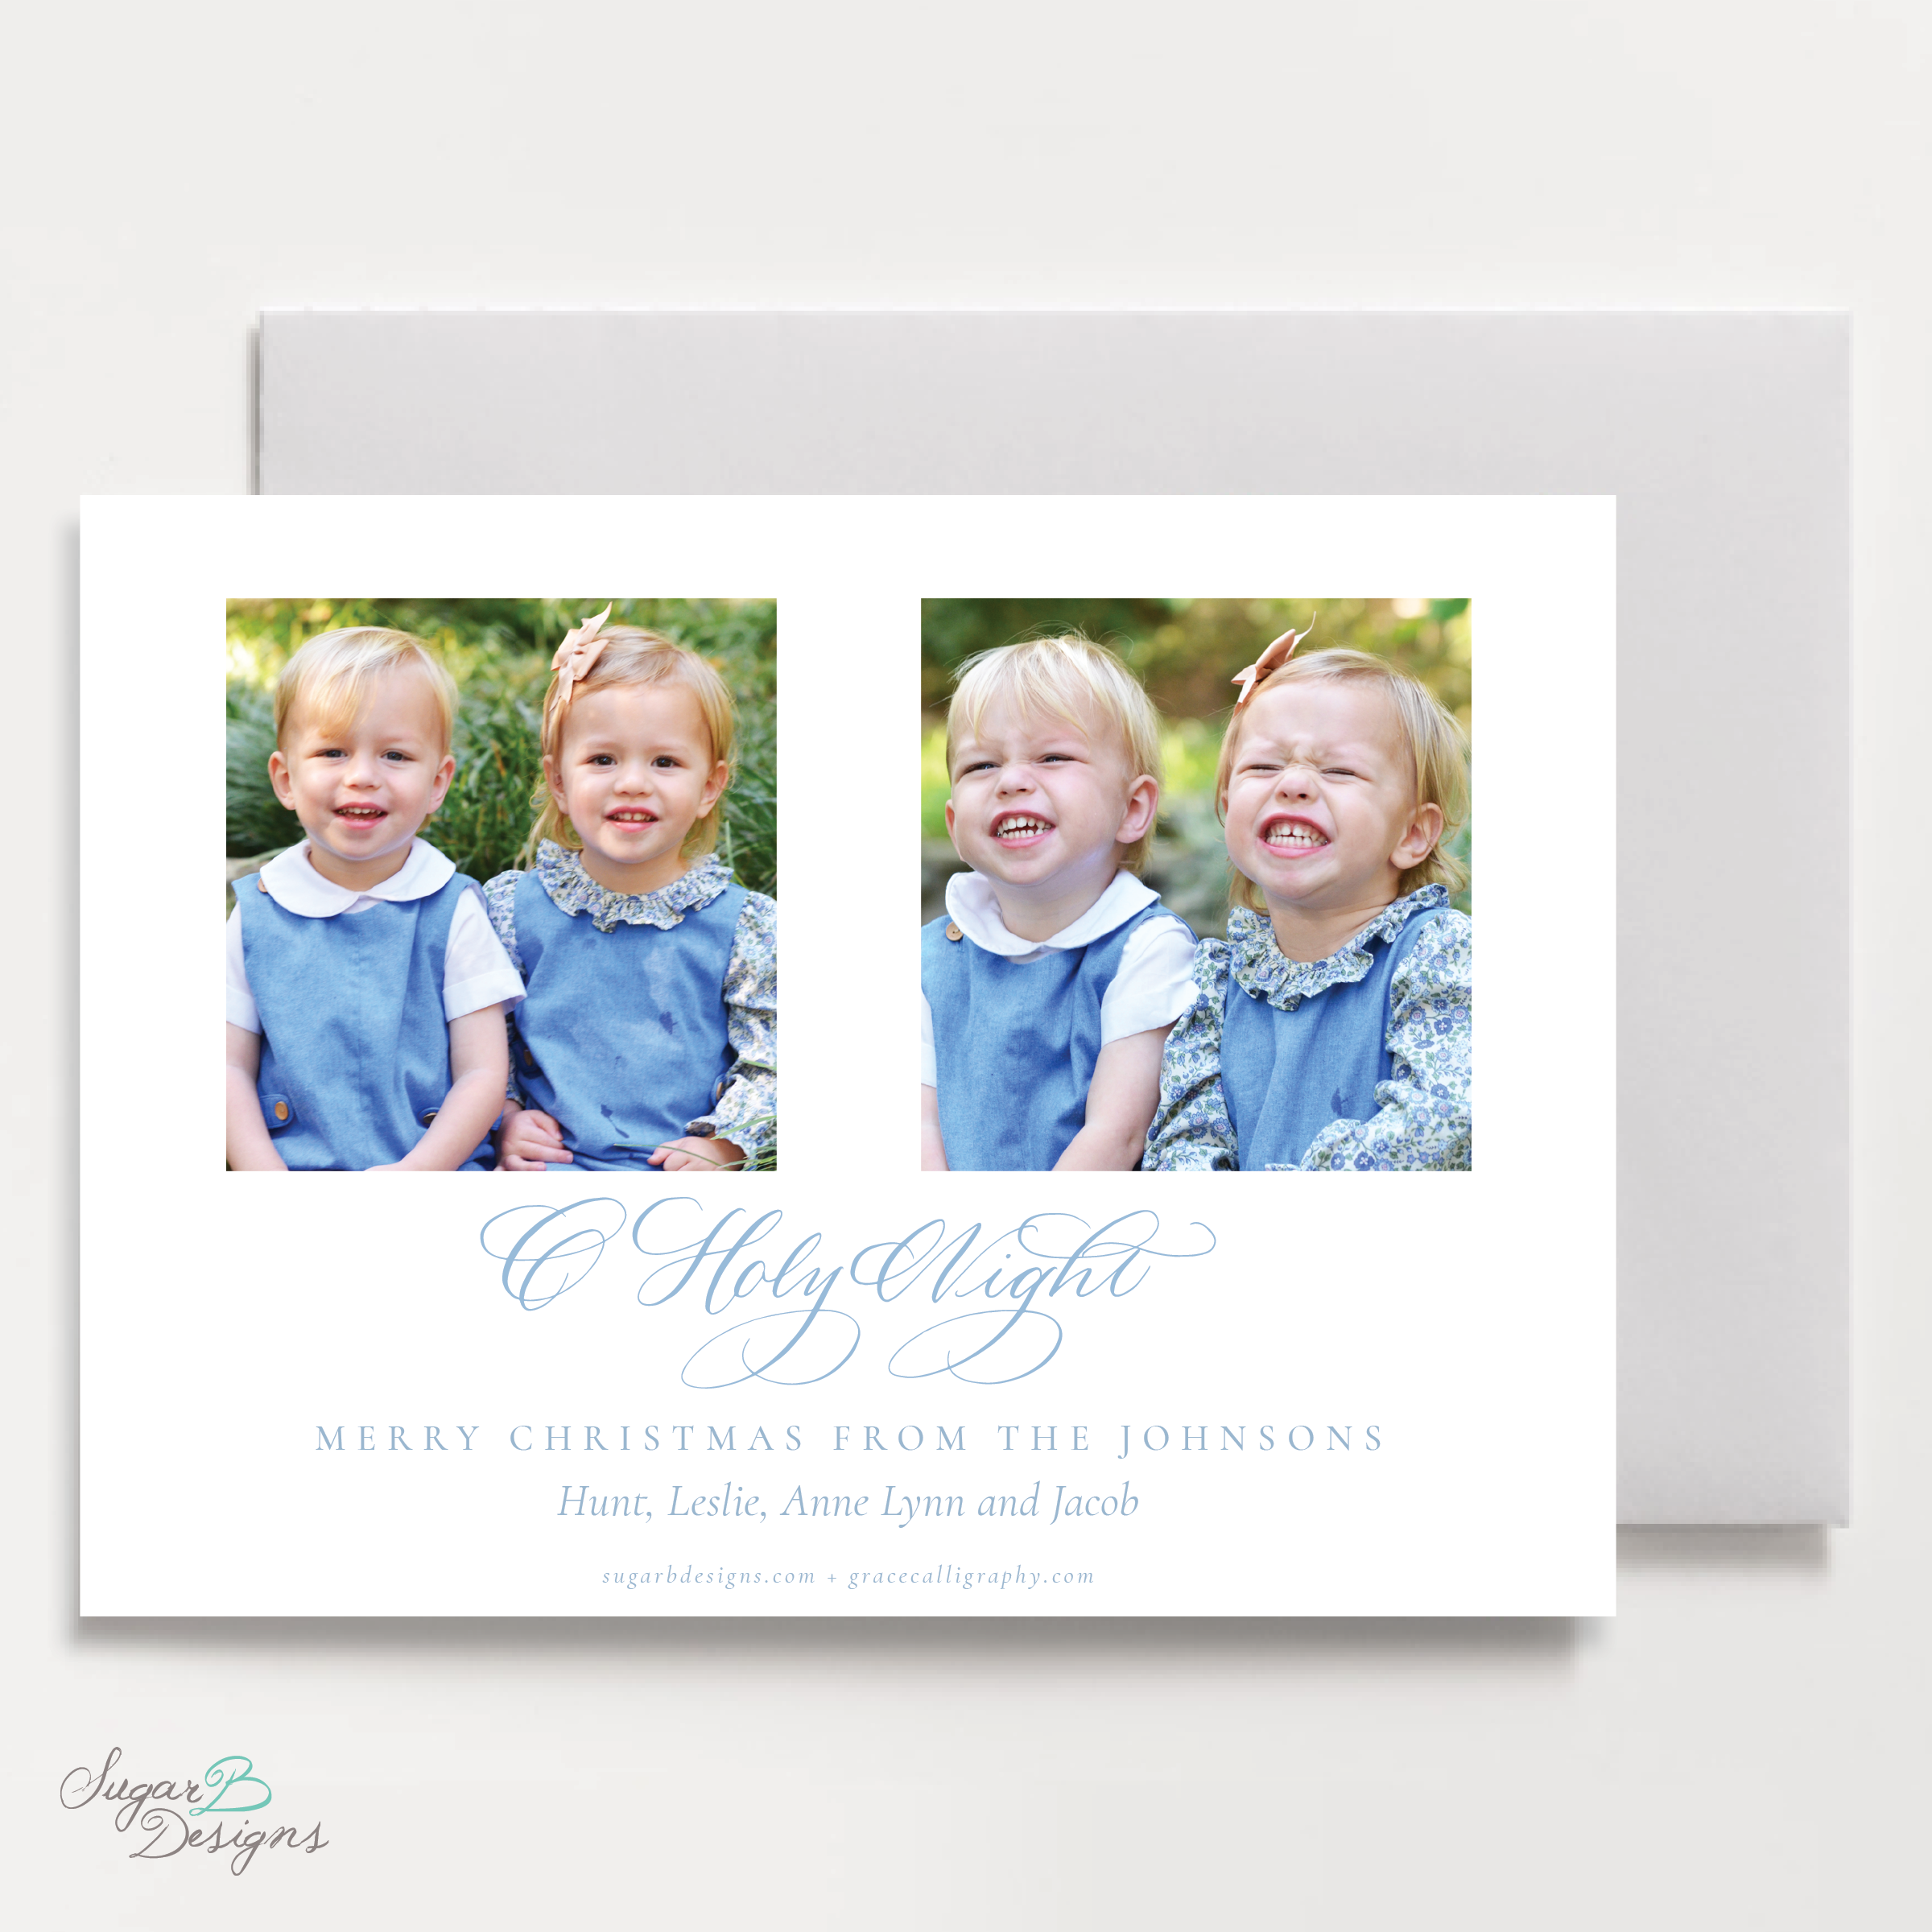 The Newborn King LANDSCAPE Christmas Card back by Sugar B Designs.png